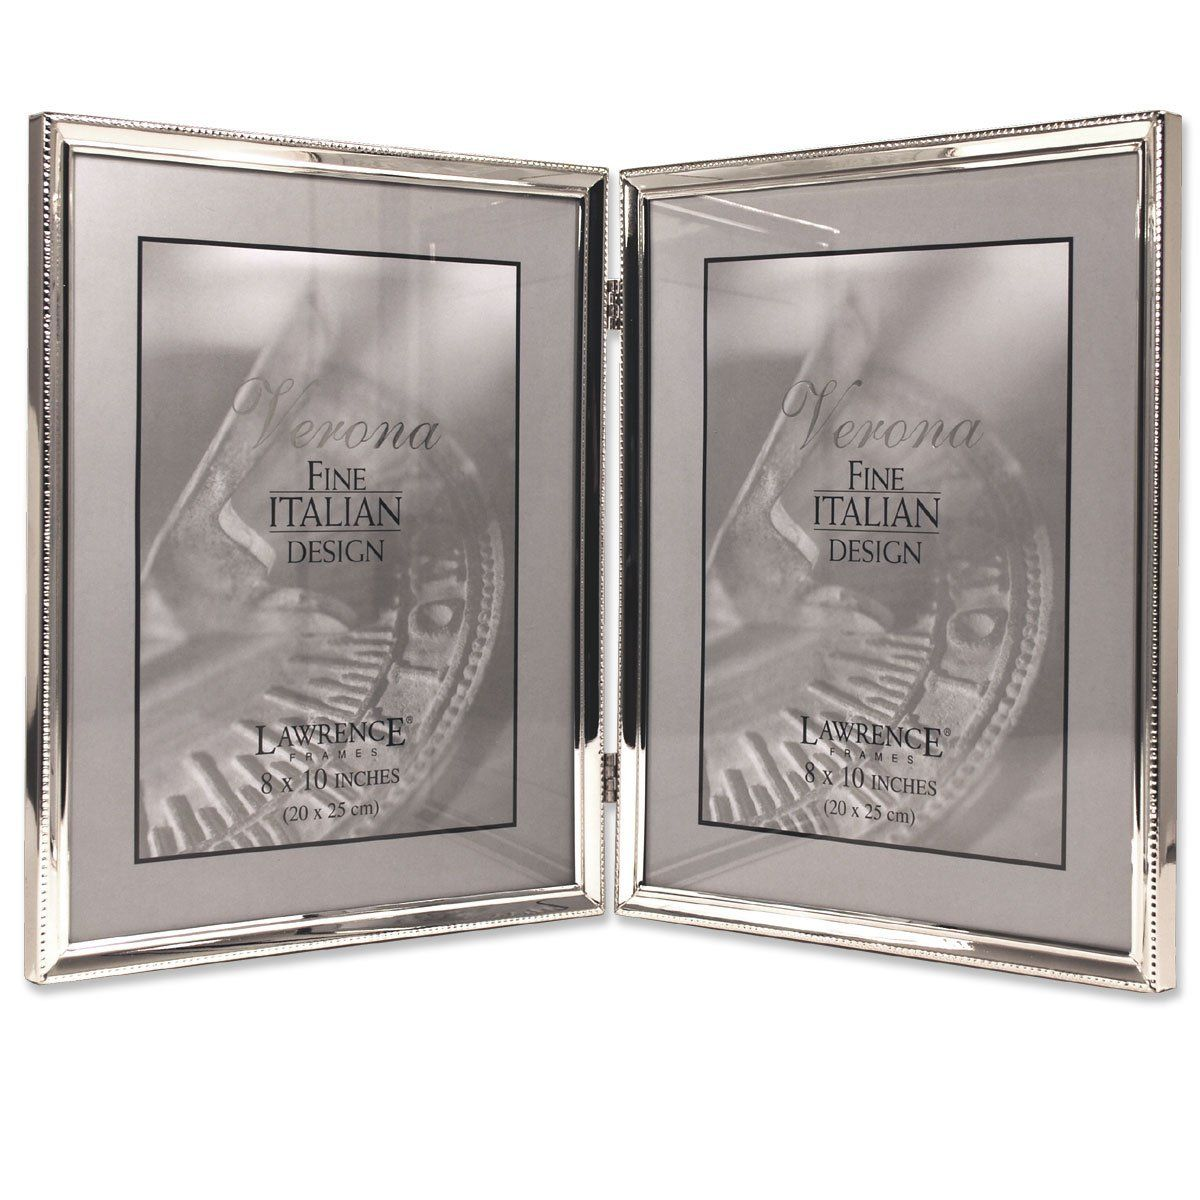 Lawrence frames polished silver plate 8x10 hinged double picture lawrence frames polished silver plate 8x10 hinged double picture frame bead border design amazon jeuxipadfo Gallery